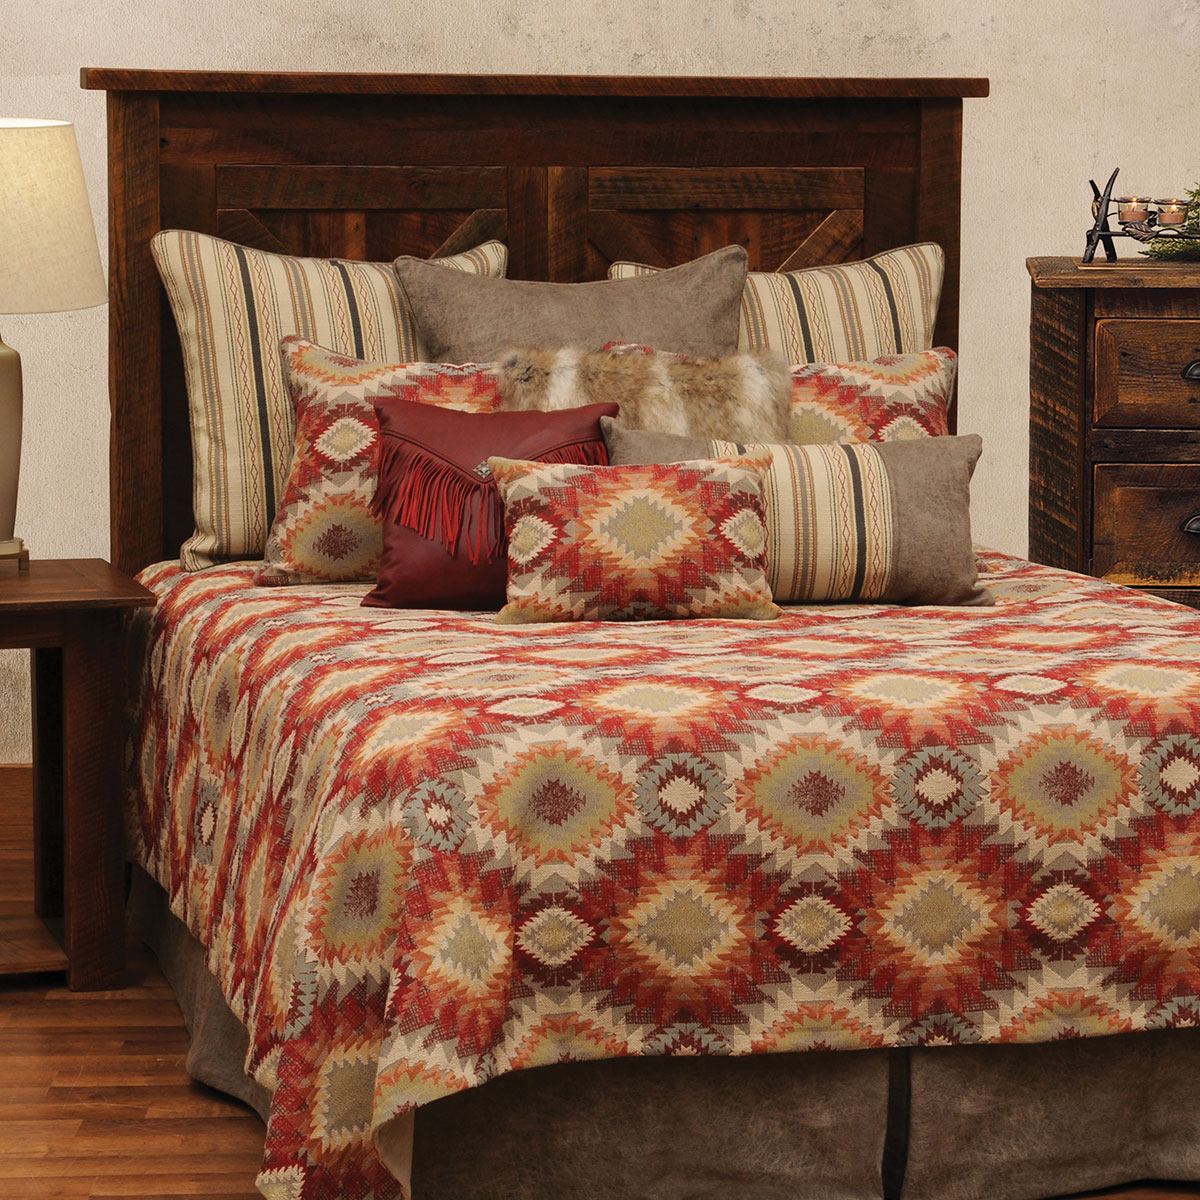 Yuma Sol Deluxe Bed Set - Super King